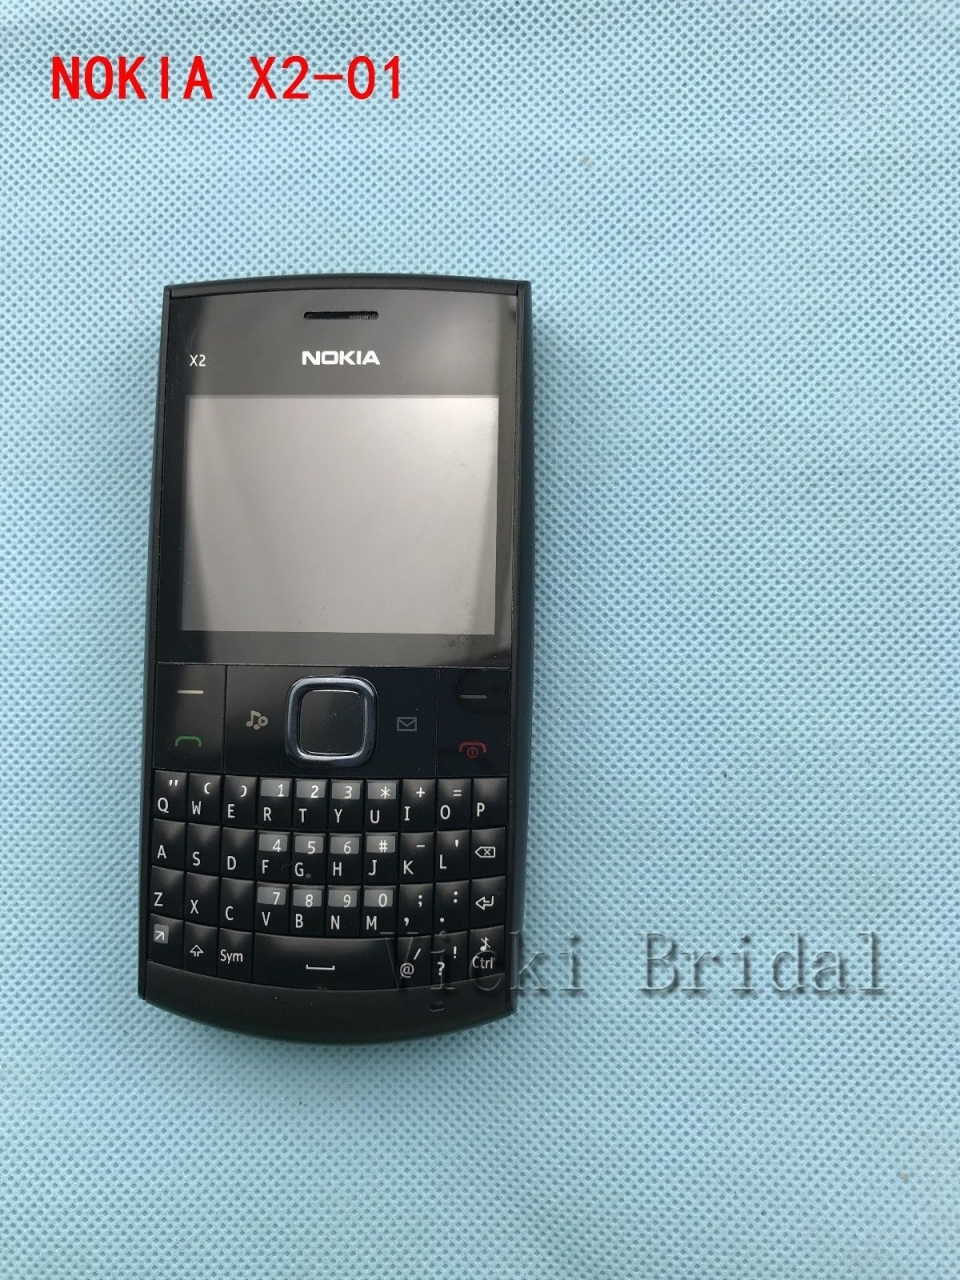 Refurbished phone Nokia X2-01 Symbian OS Computer Keyboard Mobile Phone Fashion Cell Phones blue 5